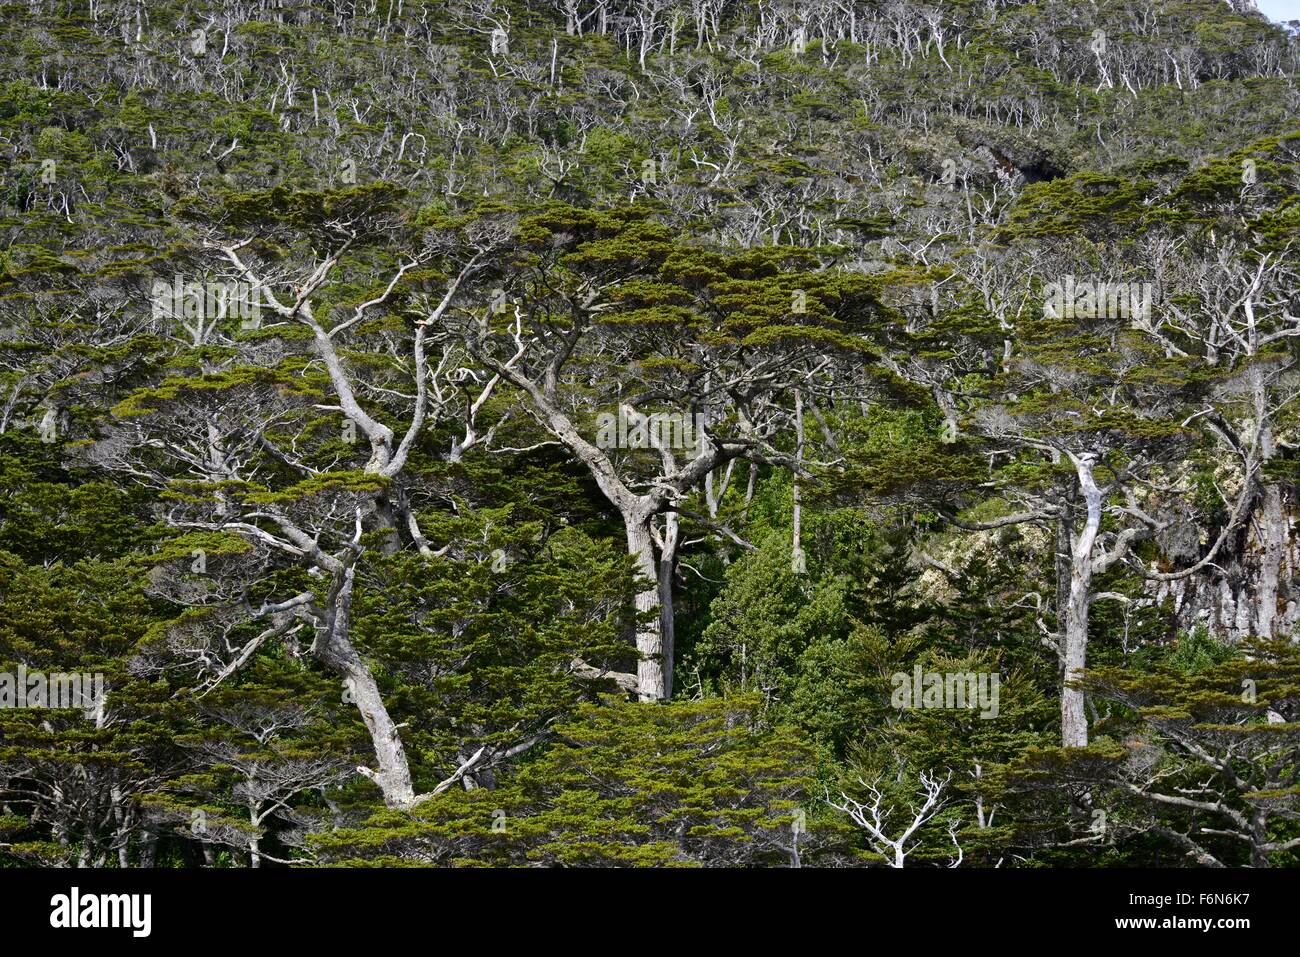 Typical humid and impenetrable structure of multilayered ever-green beech and winter's bark forest. Hoppner - Stock Image